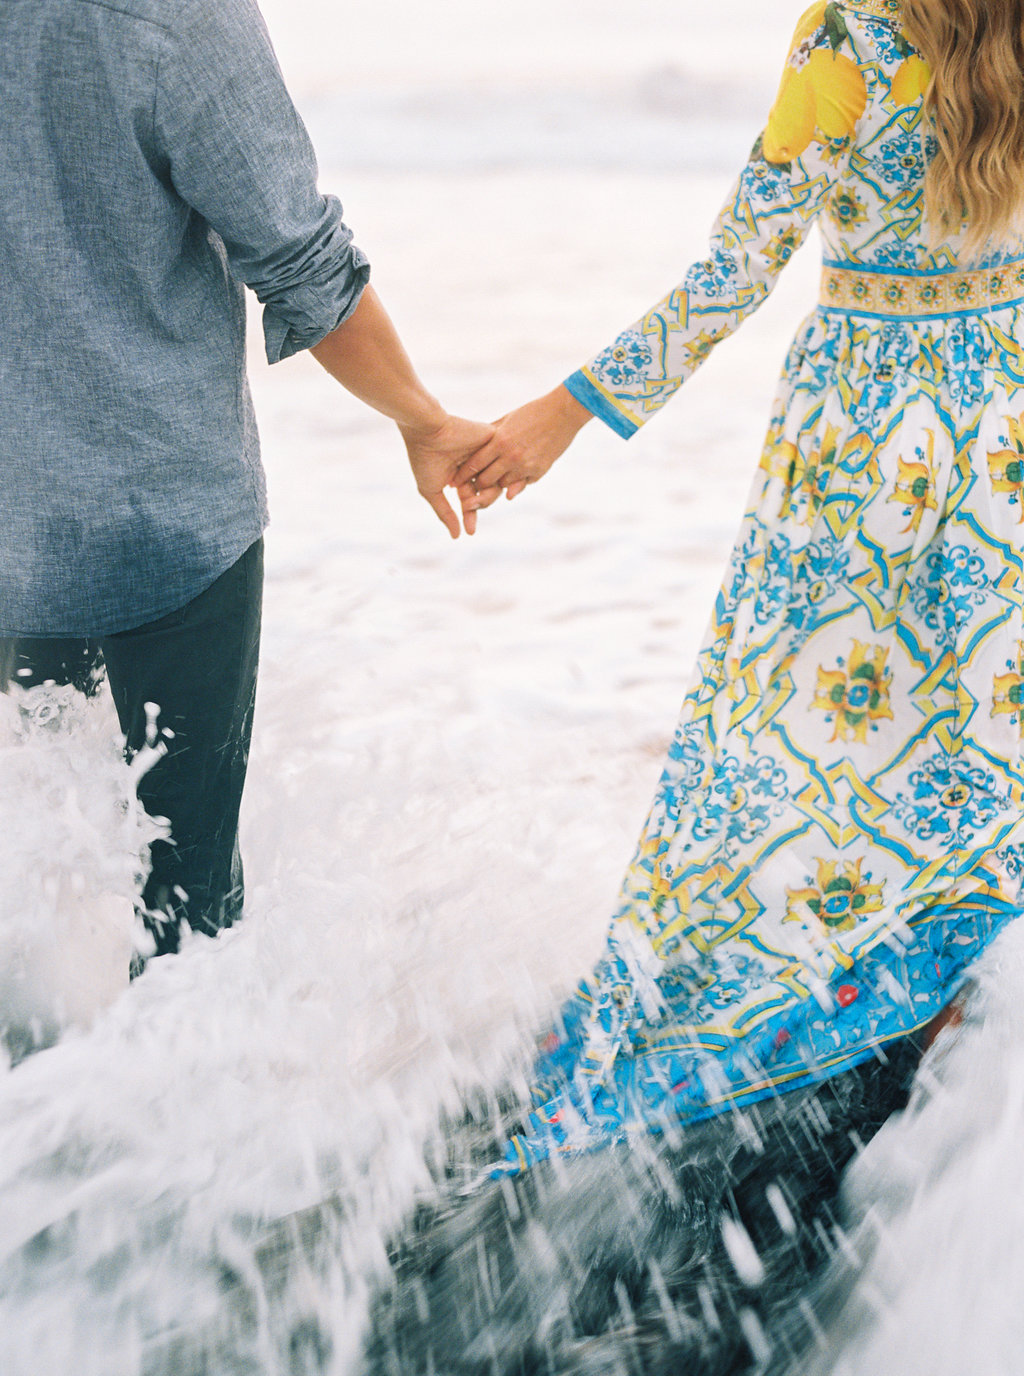 Hawaii Engagement Inspiration from Cottage Hill-2085.jpg